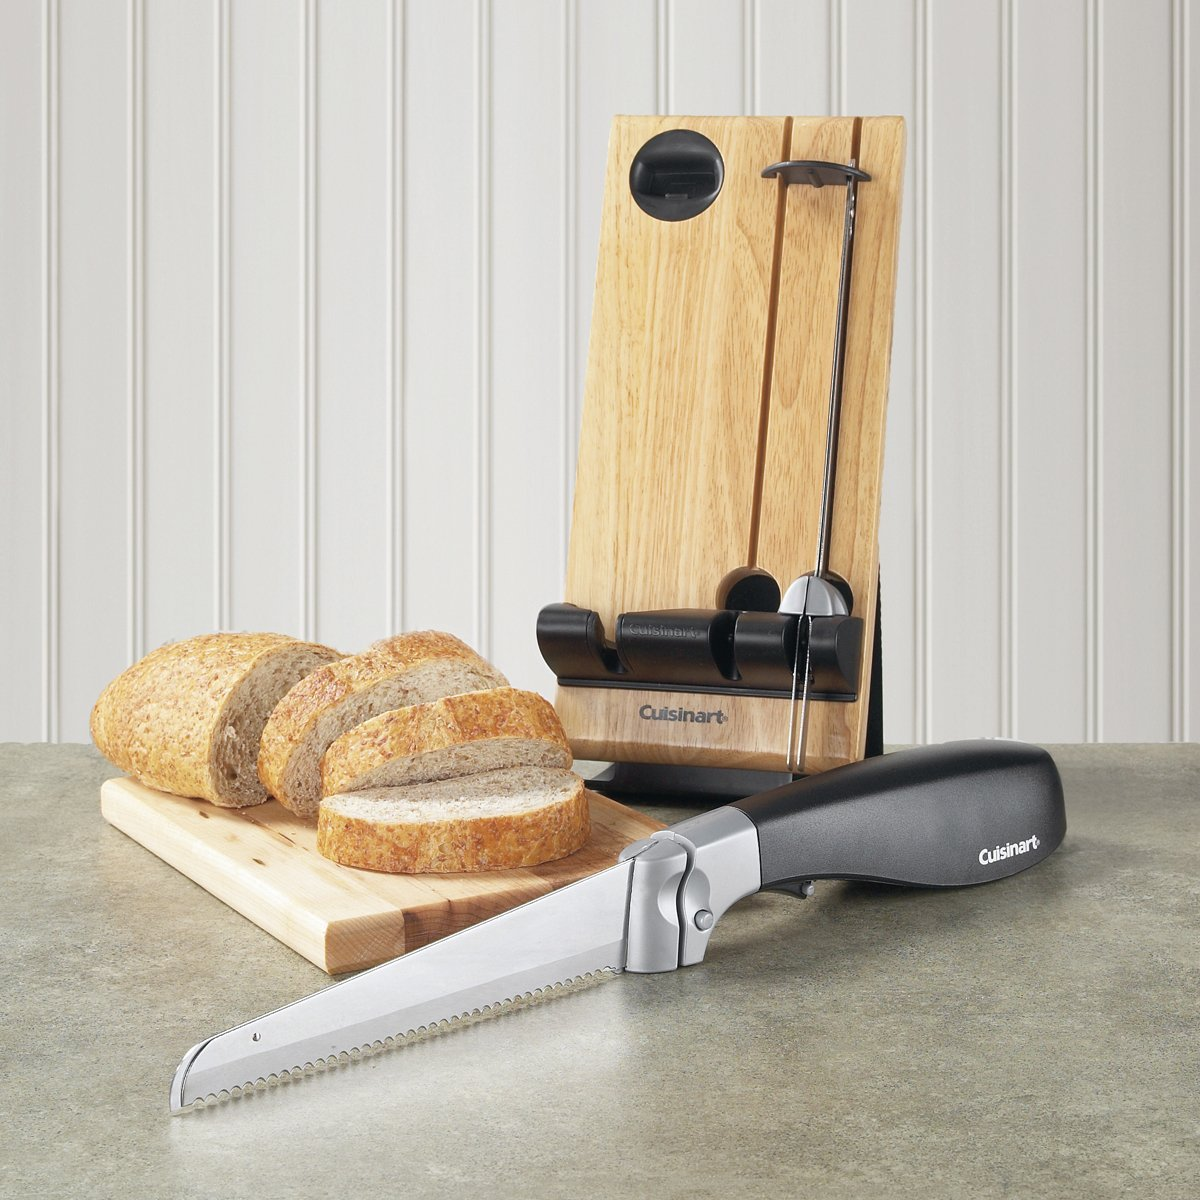 Electric Carving Knife Walmart: Cuisinart® Electric Knife